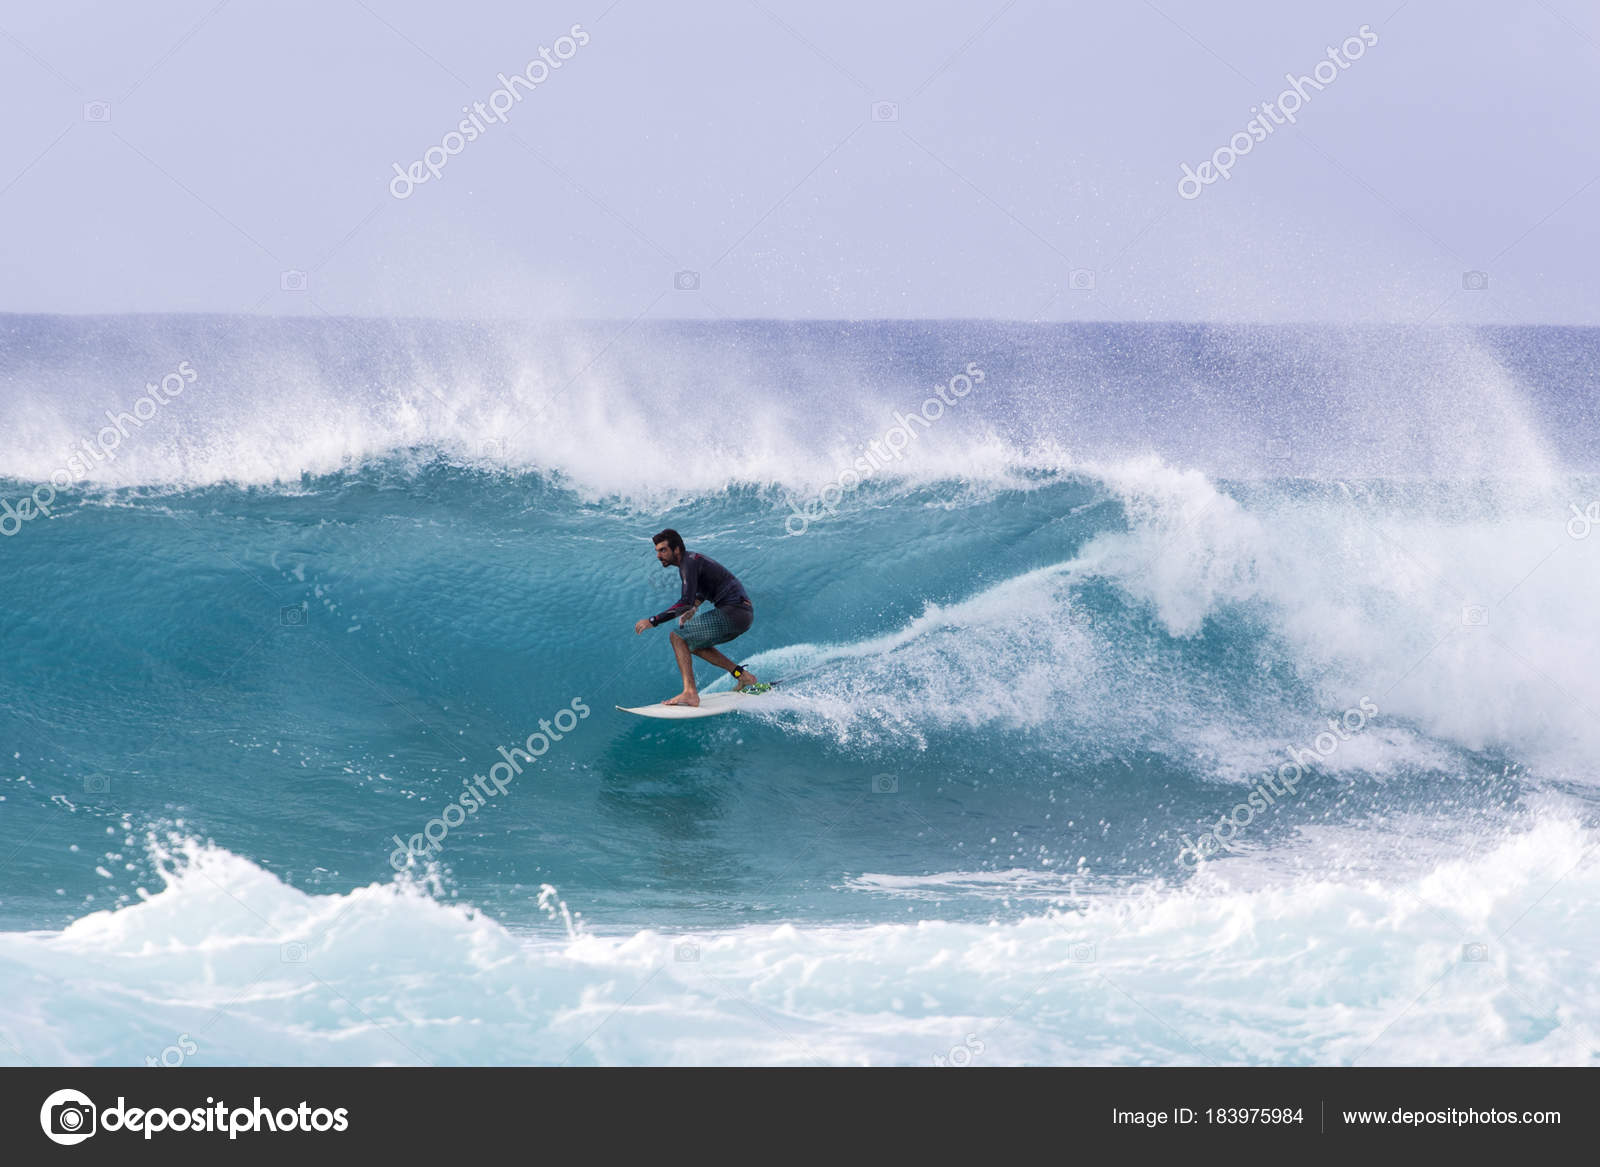 753582a33c Surfing the raging waves of Banzai Pipeline – Stock Editorial Photo ...